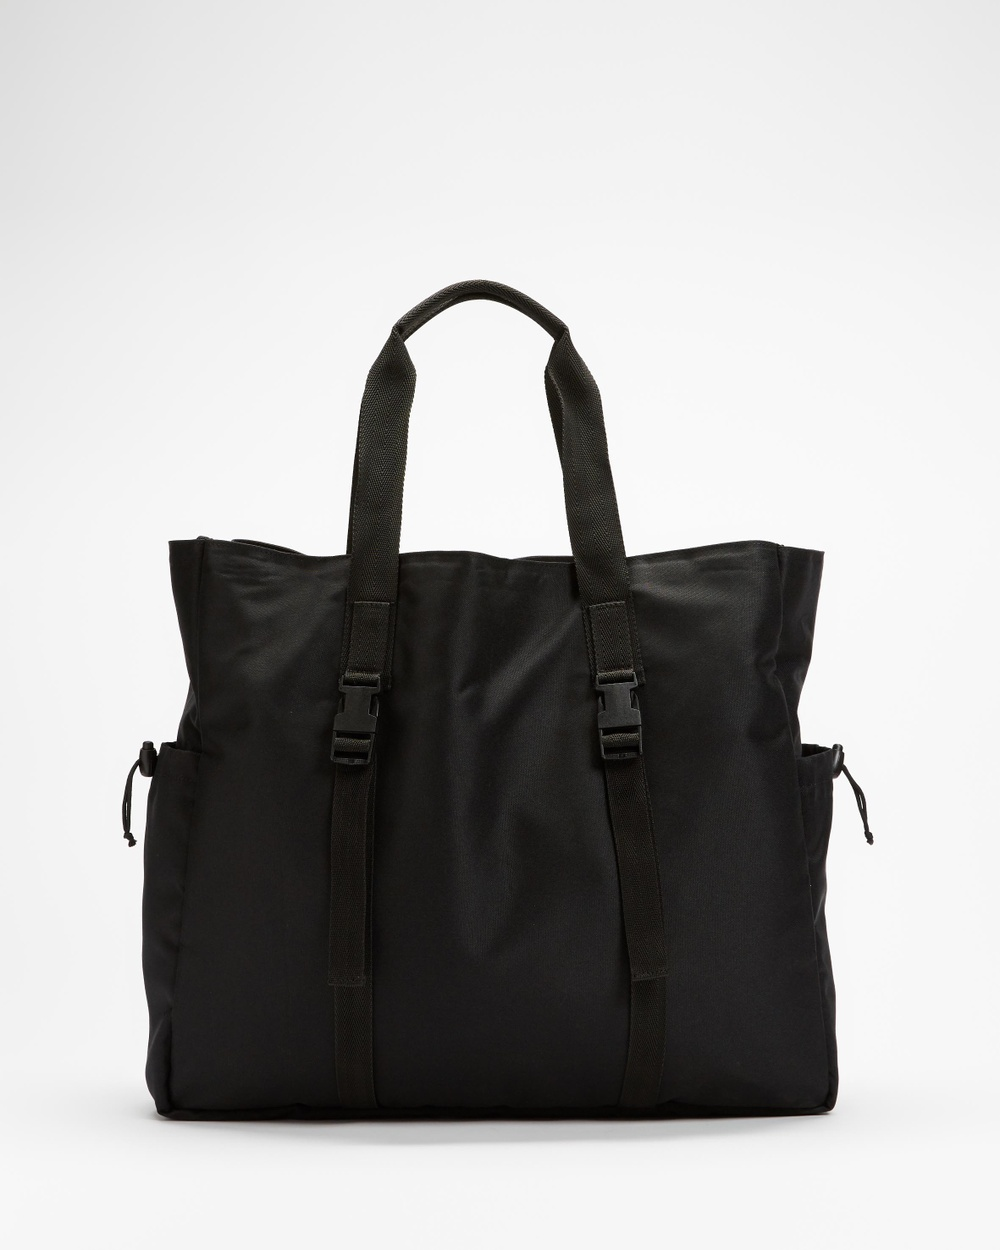 AERE Recycled Polyester Tote Bags Black